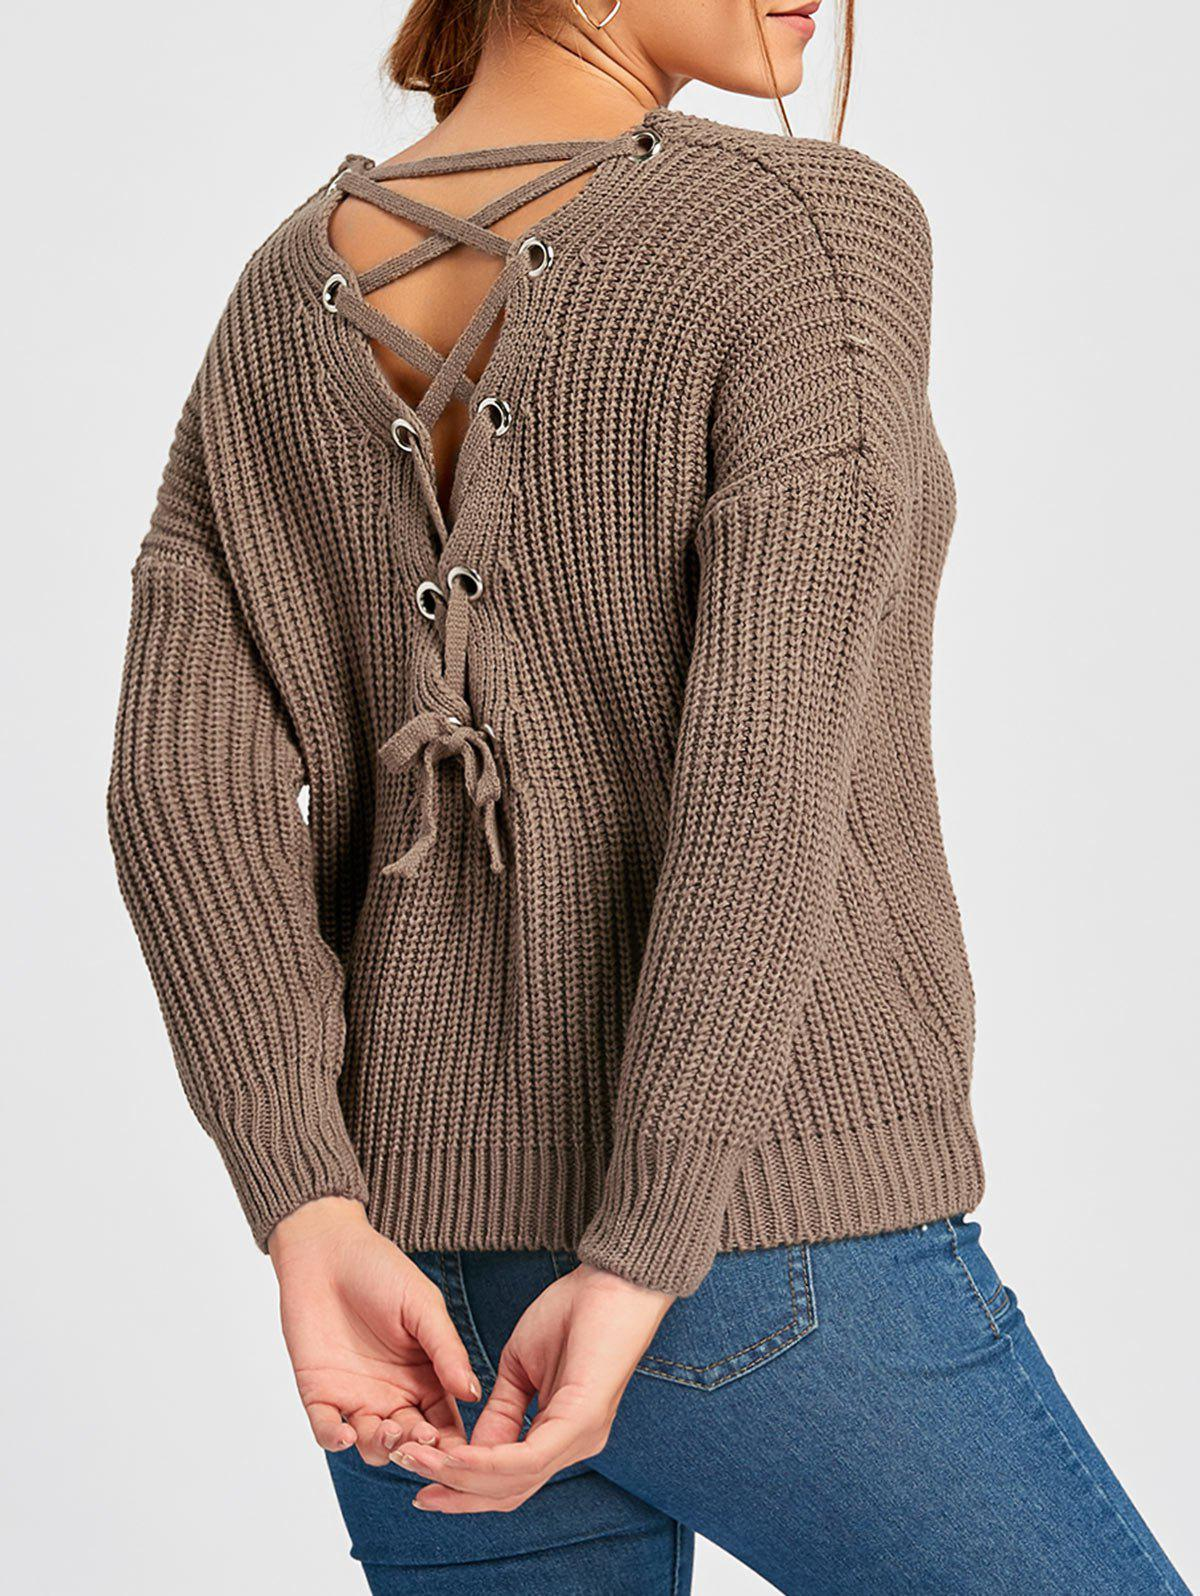 Shop Scoop Neck Back Lace Up Sweater